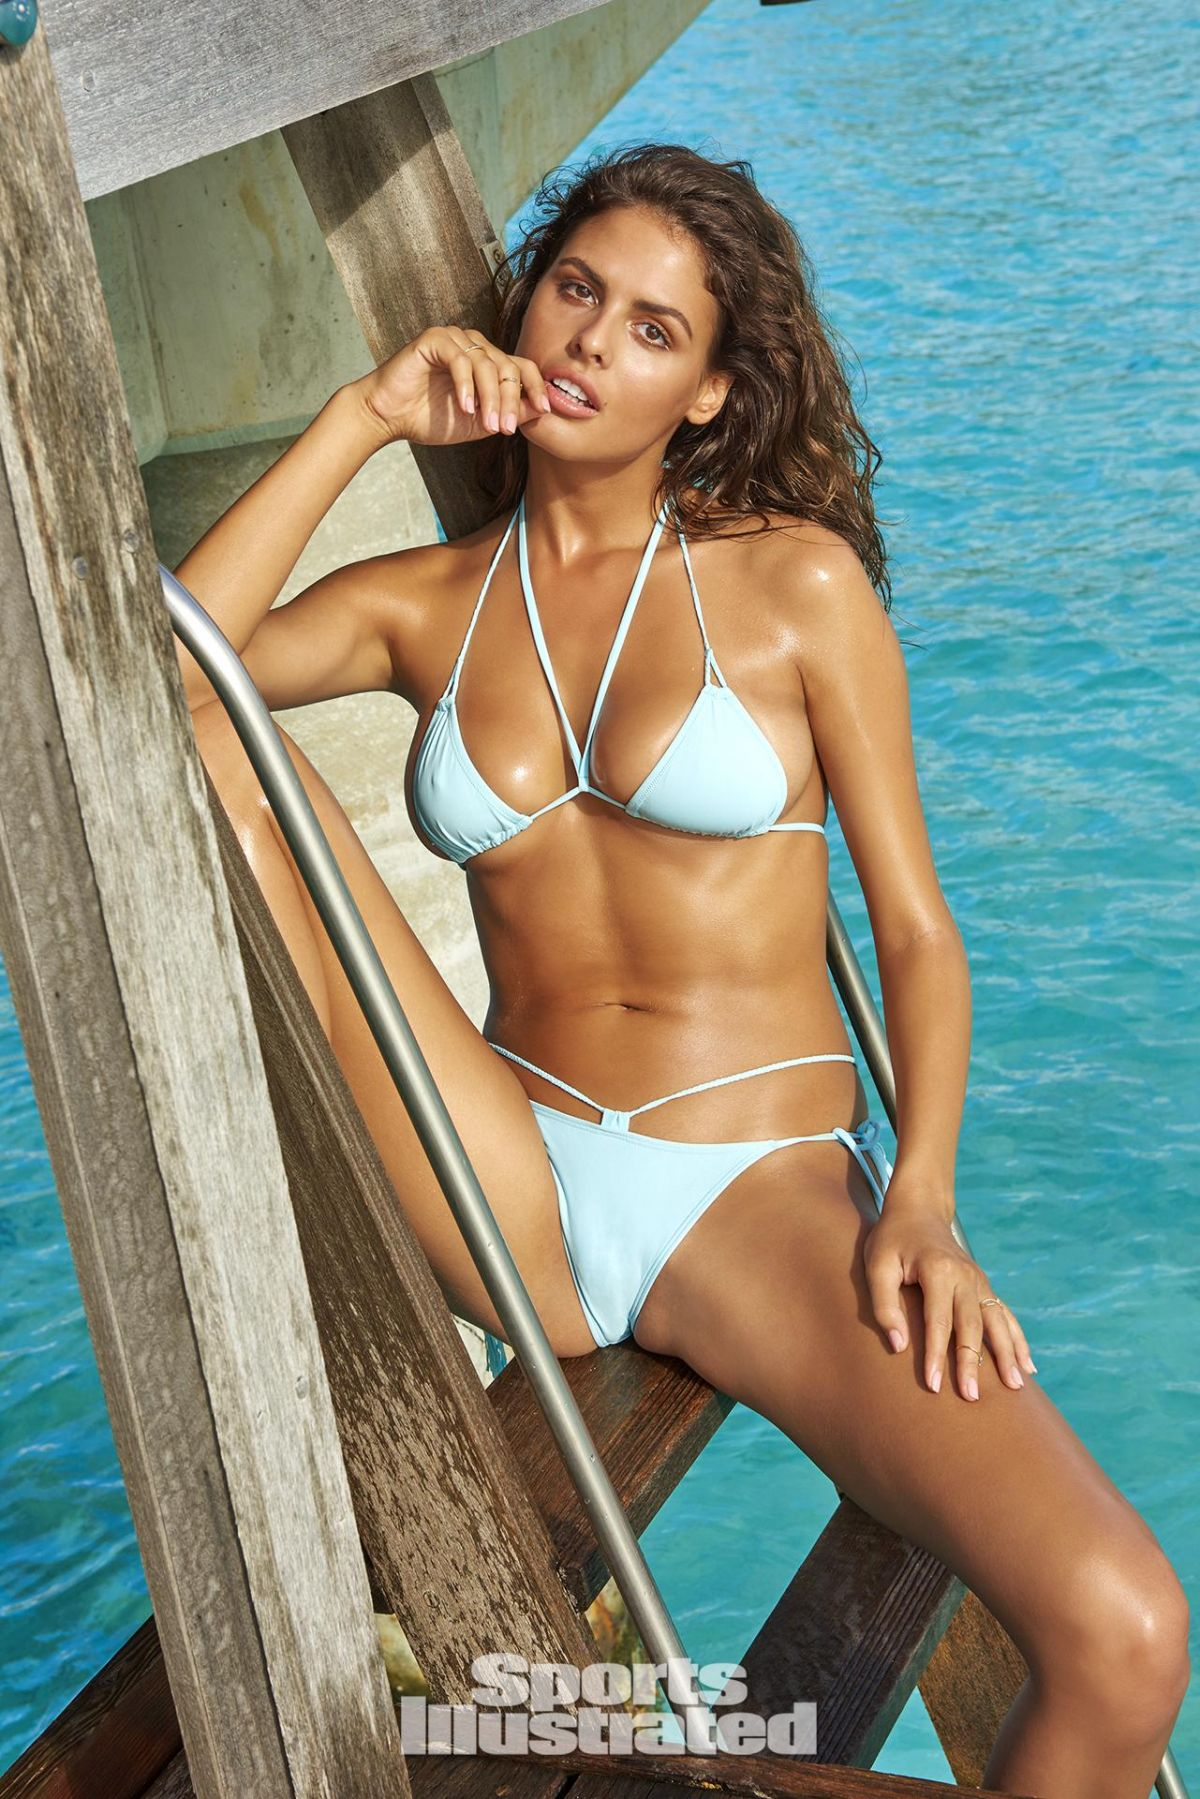 BO KRSMANOVIC in Sports Illustrated Swimsuit Issue 2016